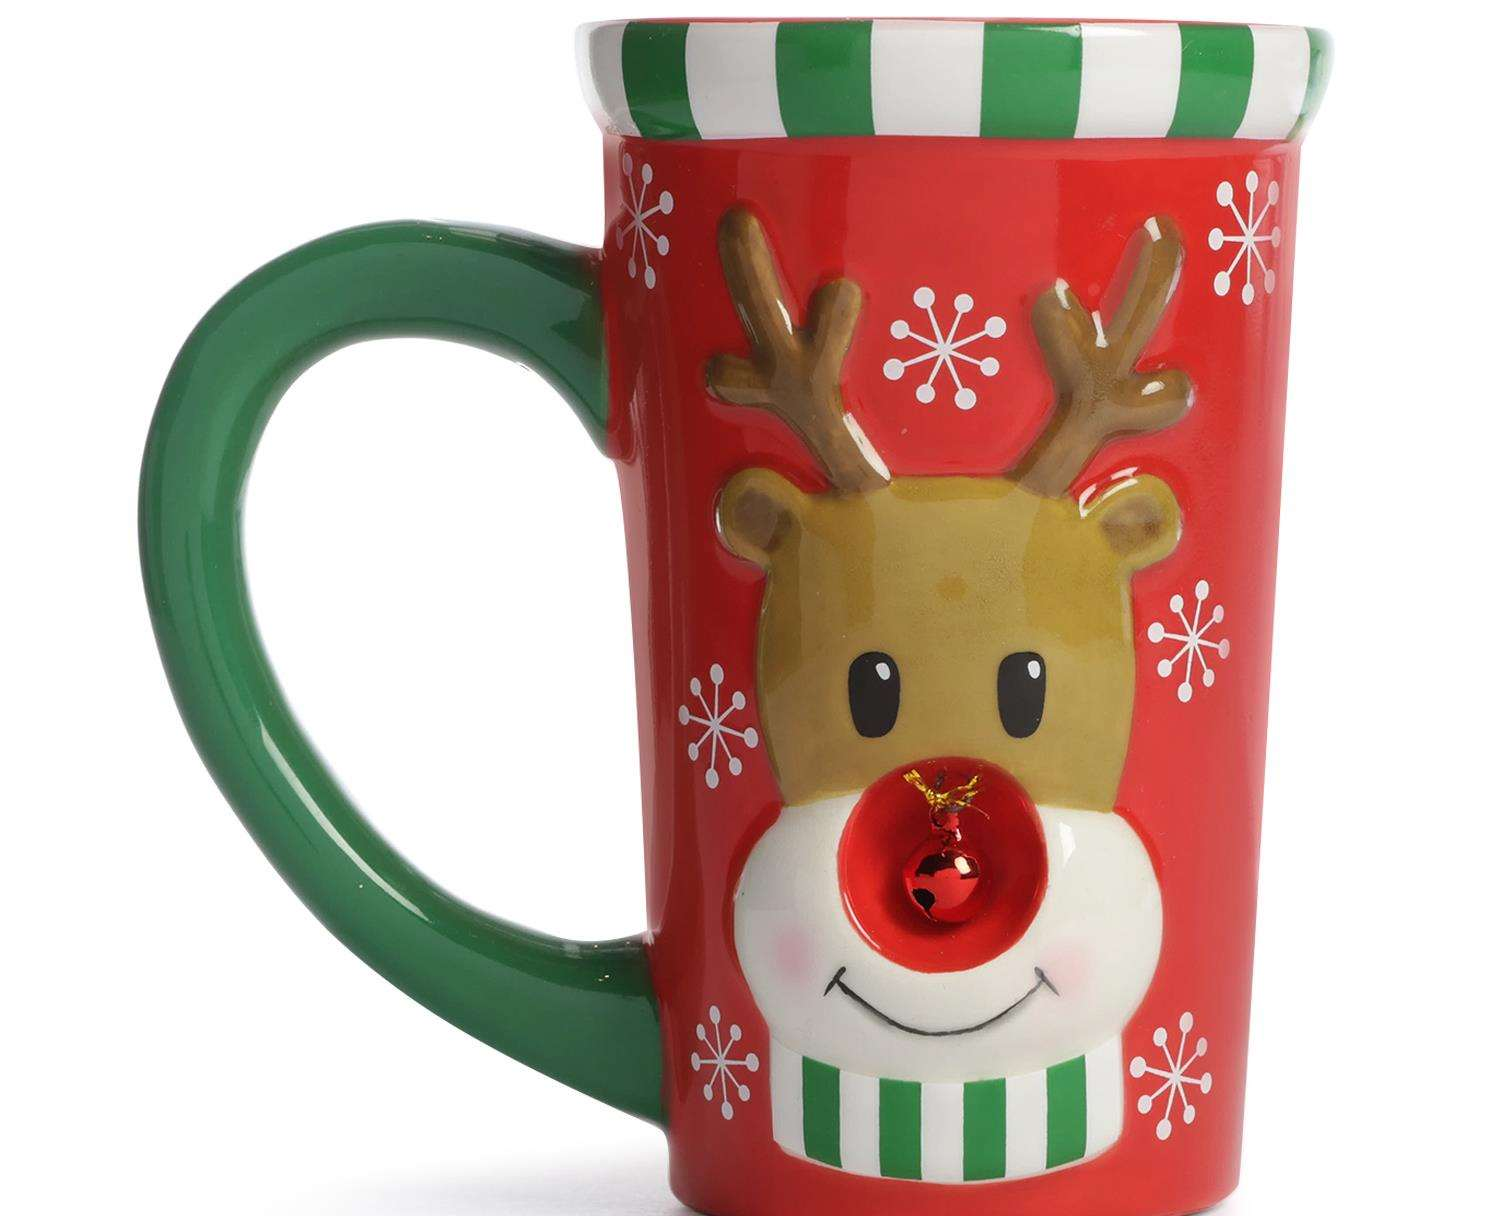 Enjoy a hot chocolate in a festive mug on Christmas Eve. Rudolph mug from Primark, £5.